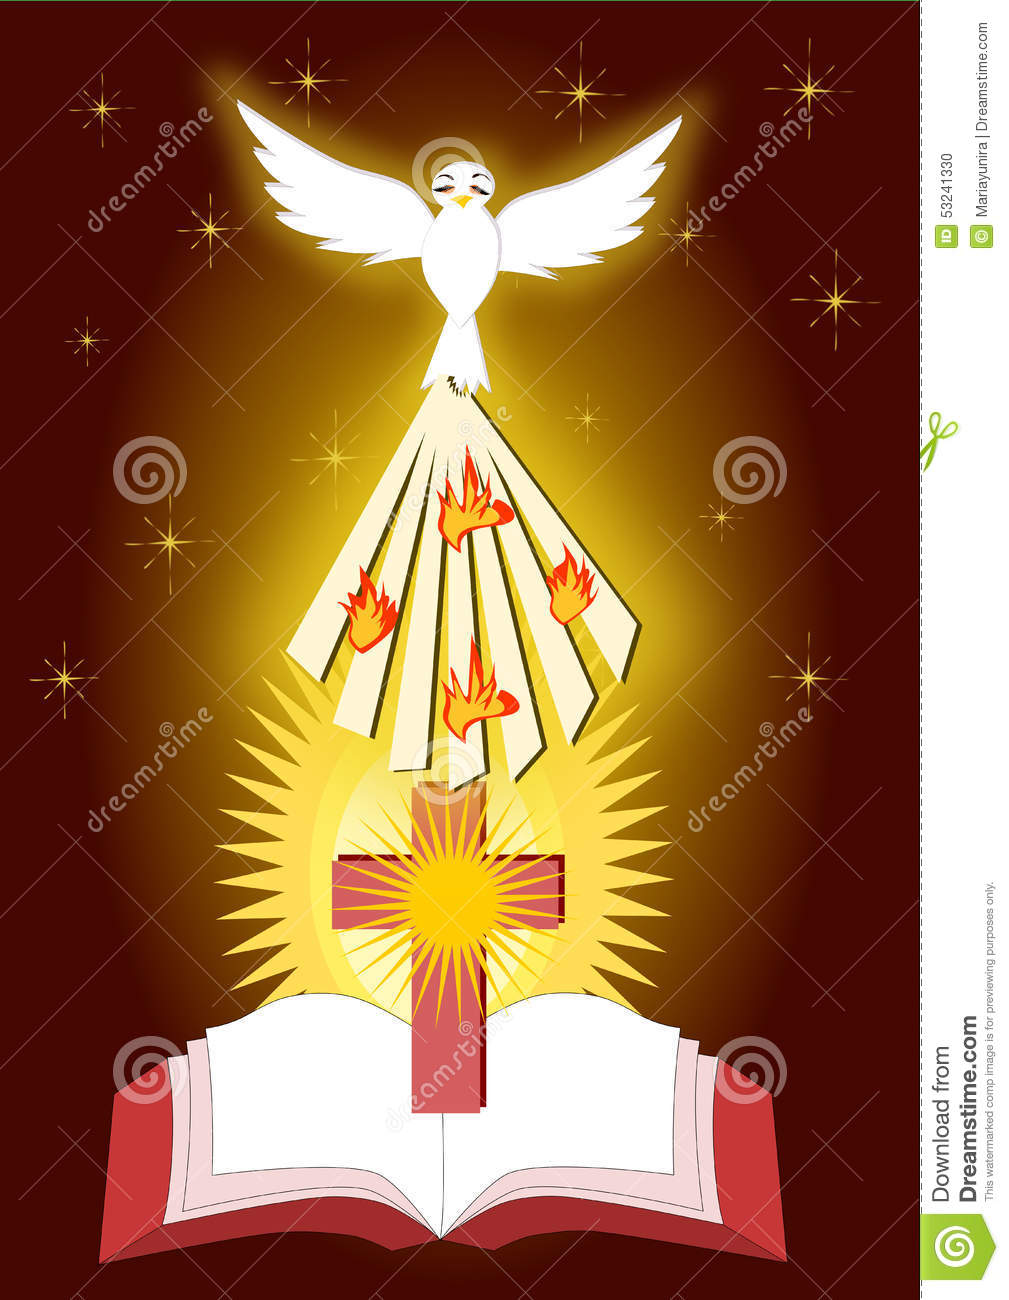 The confirmation sacraments stock illustration illustration of the confirmation sacraments biocorpaavc Image collections